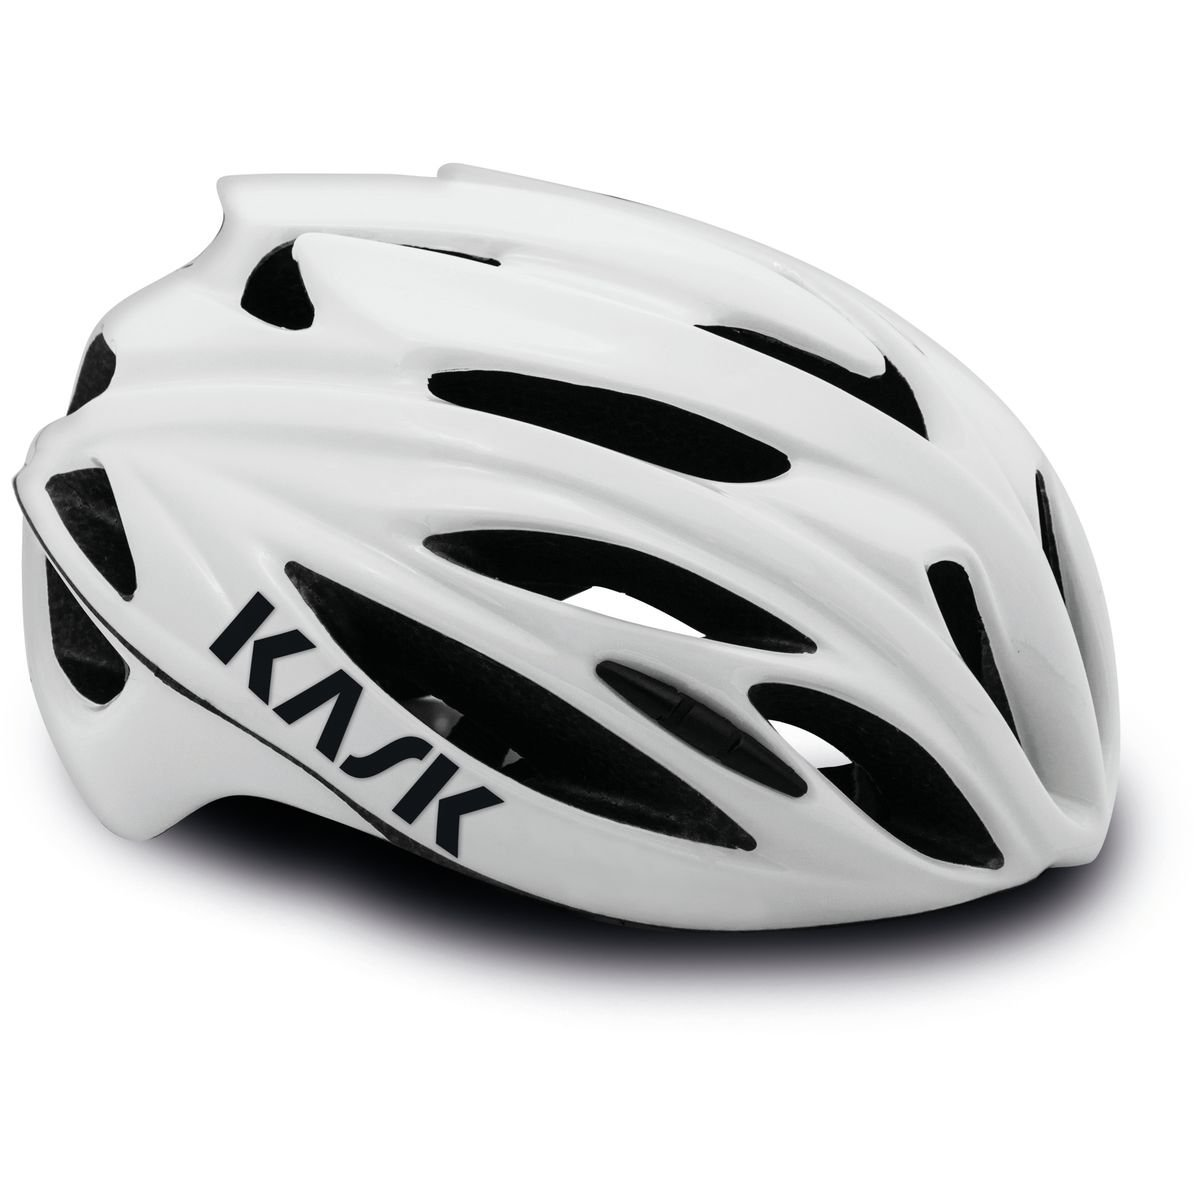 White Kask Bicycle Helmets